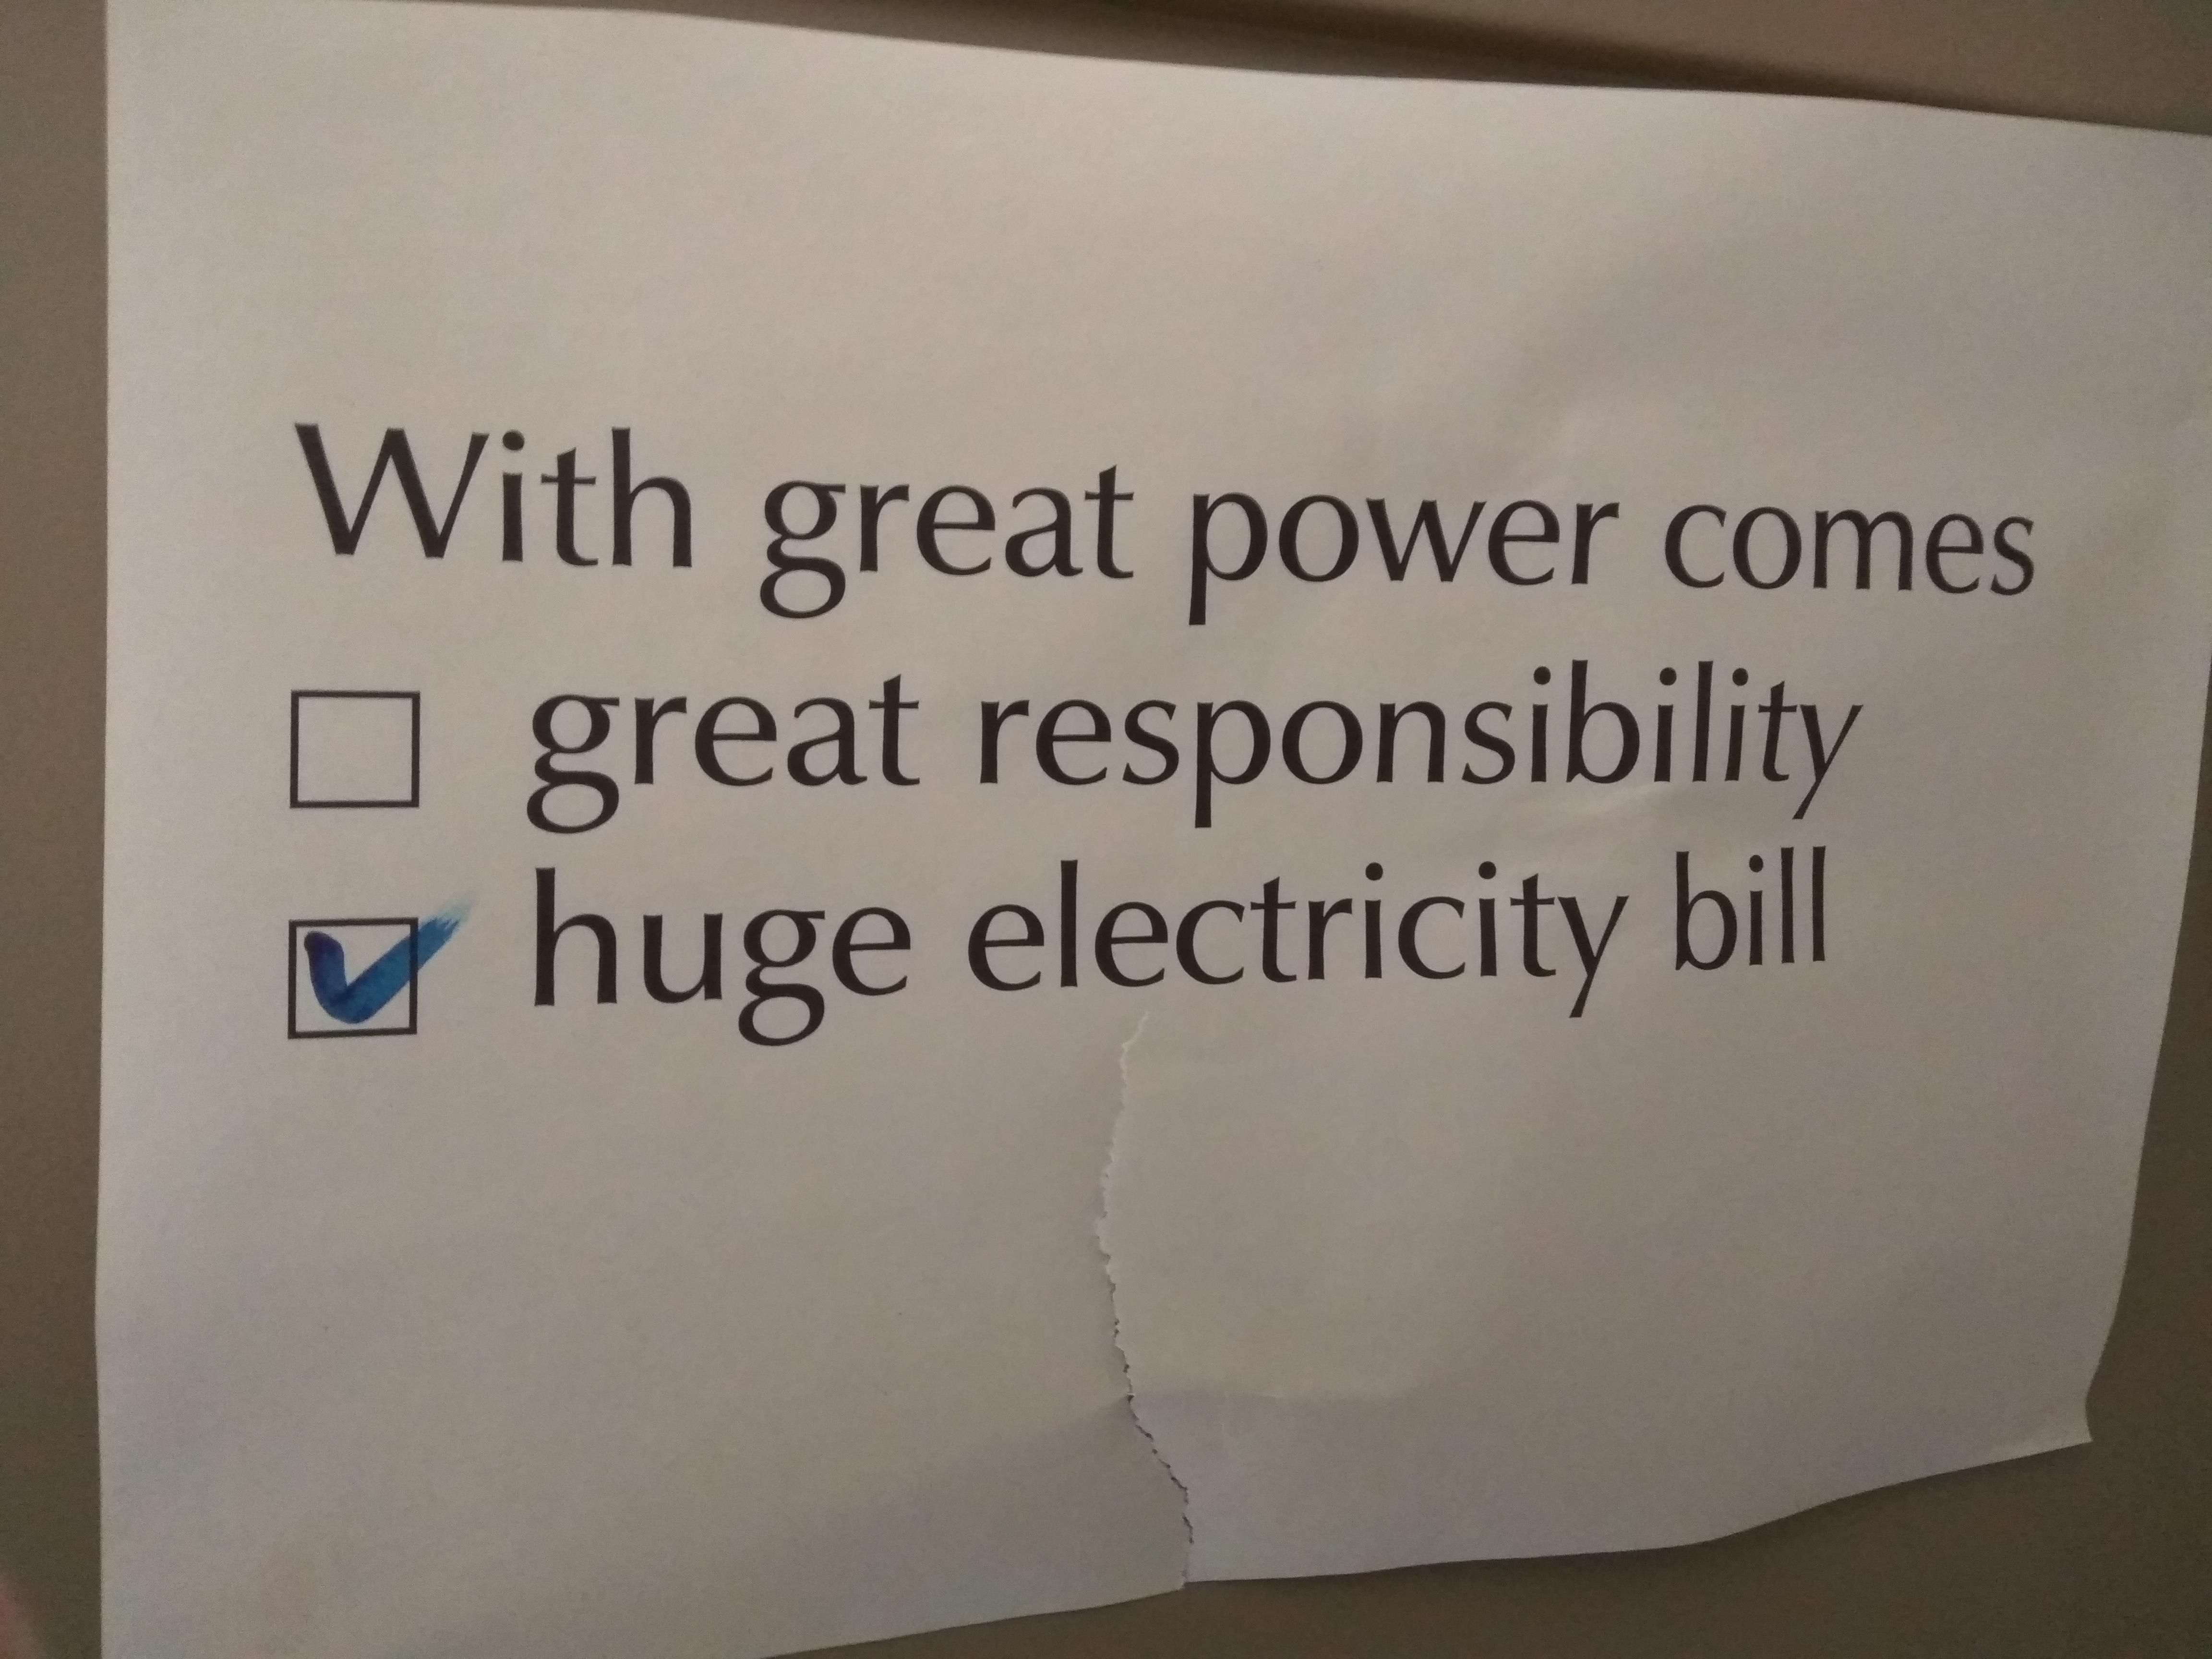 With great power comes...